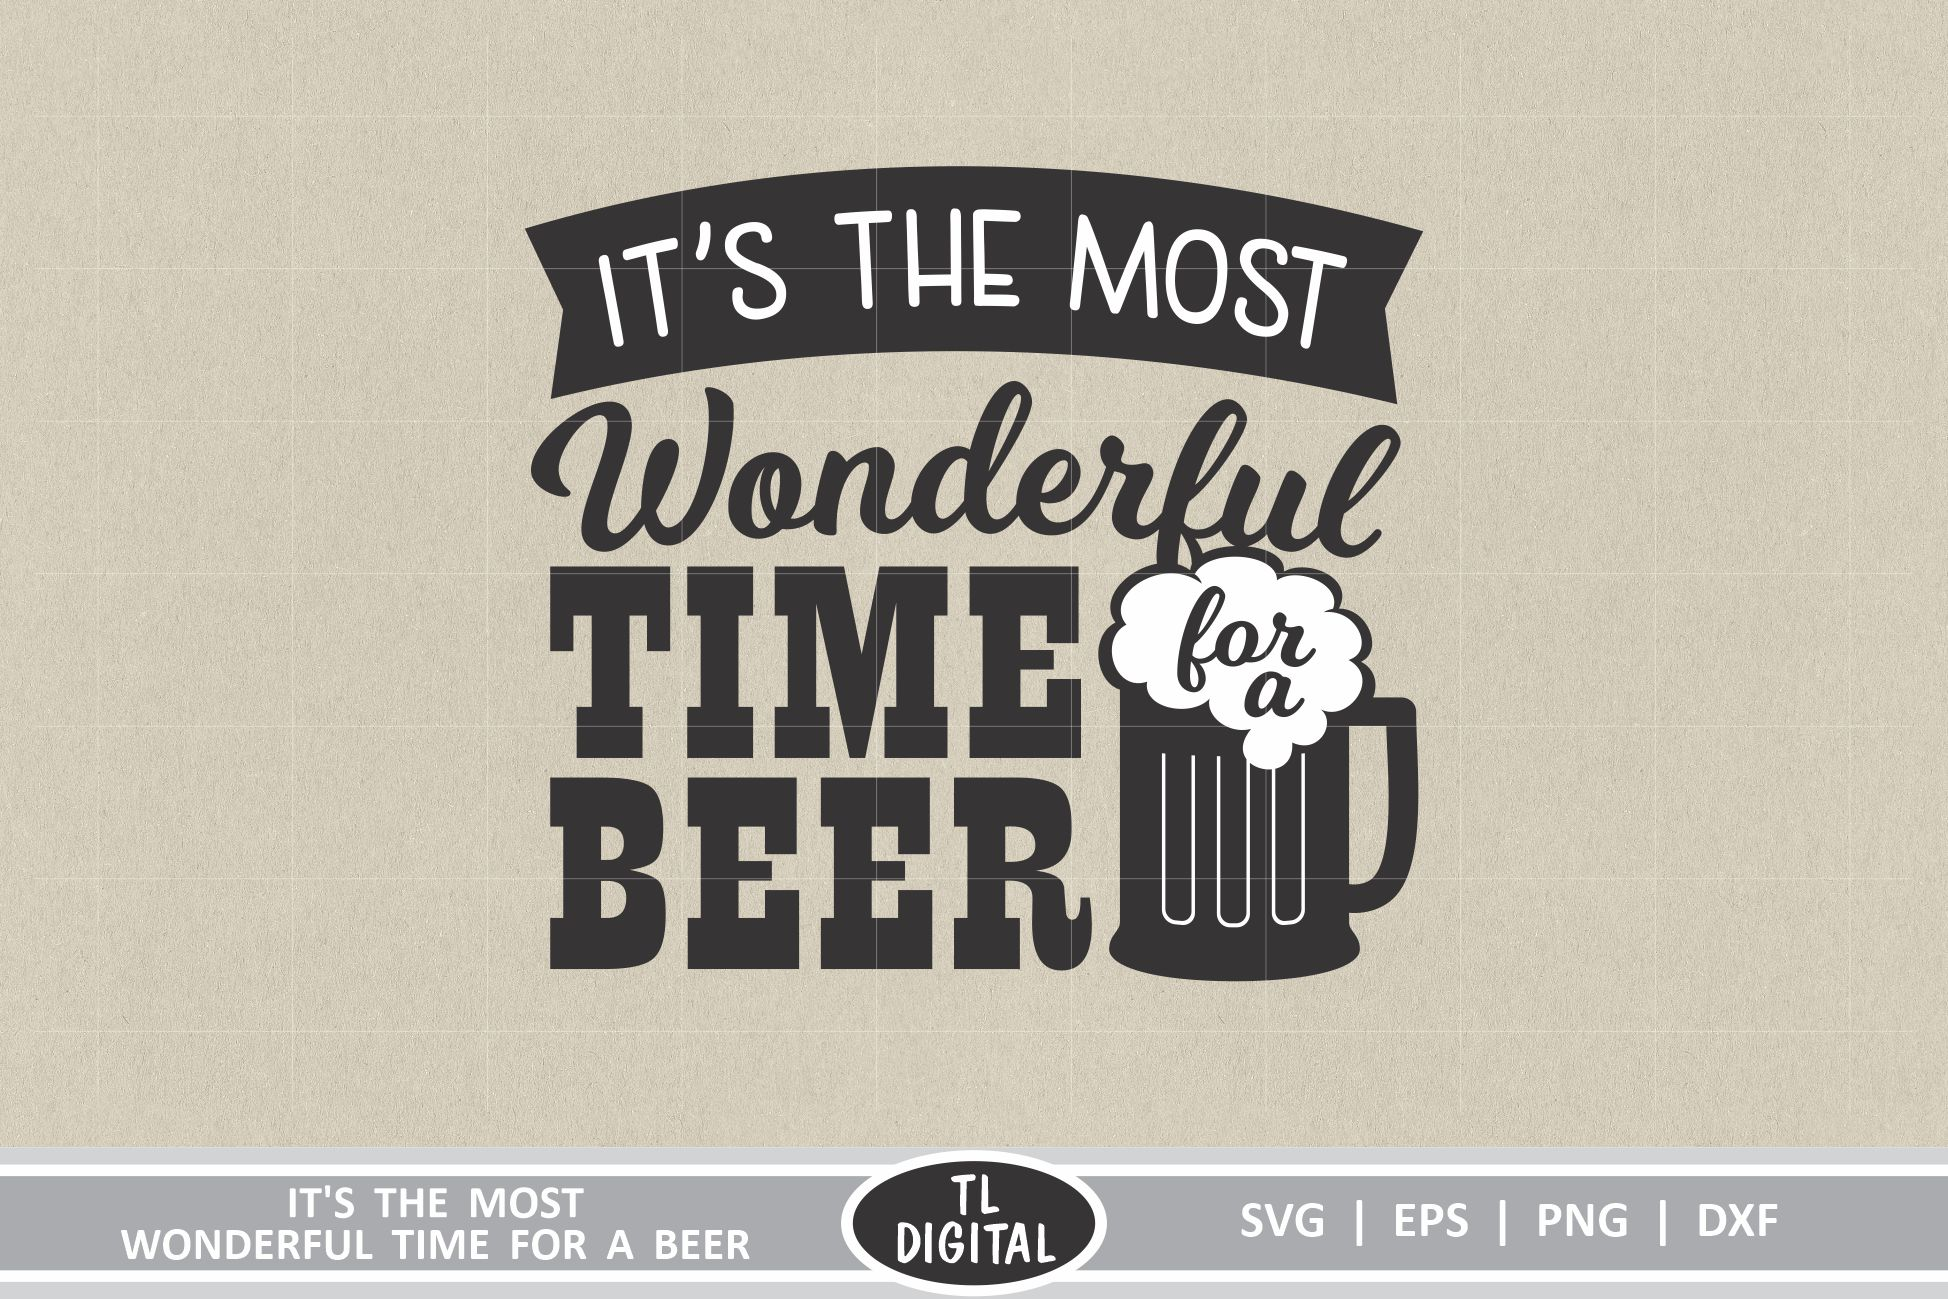 Download Free Its The Most Wonderful Time For A Beer Graphic By Tl Digital for Cricut Explore, Silhouette and other cutting machines.